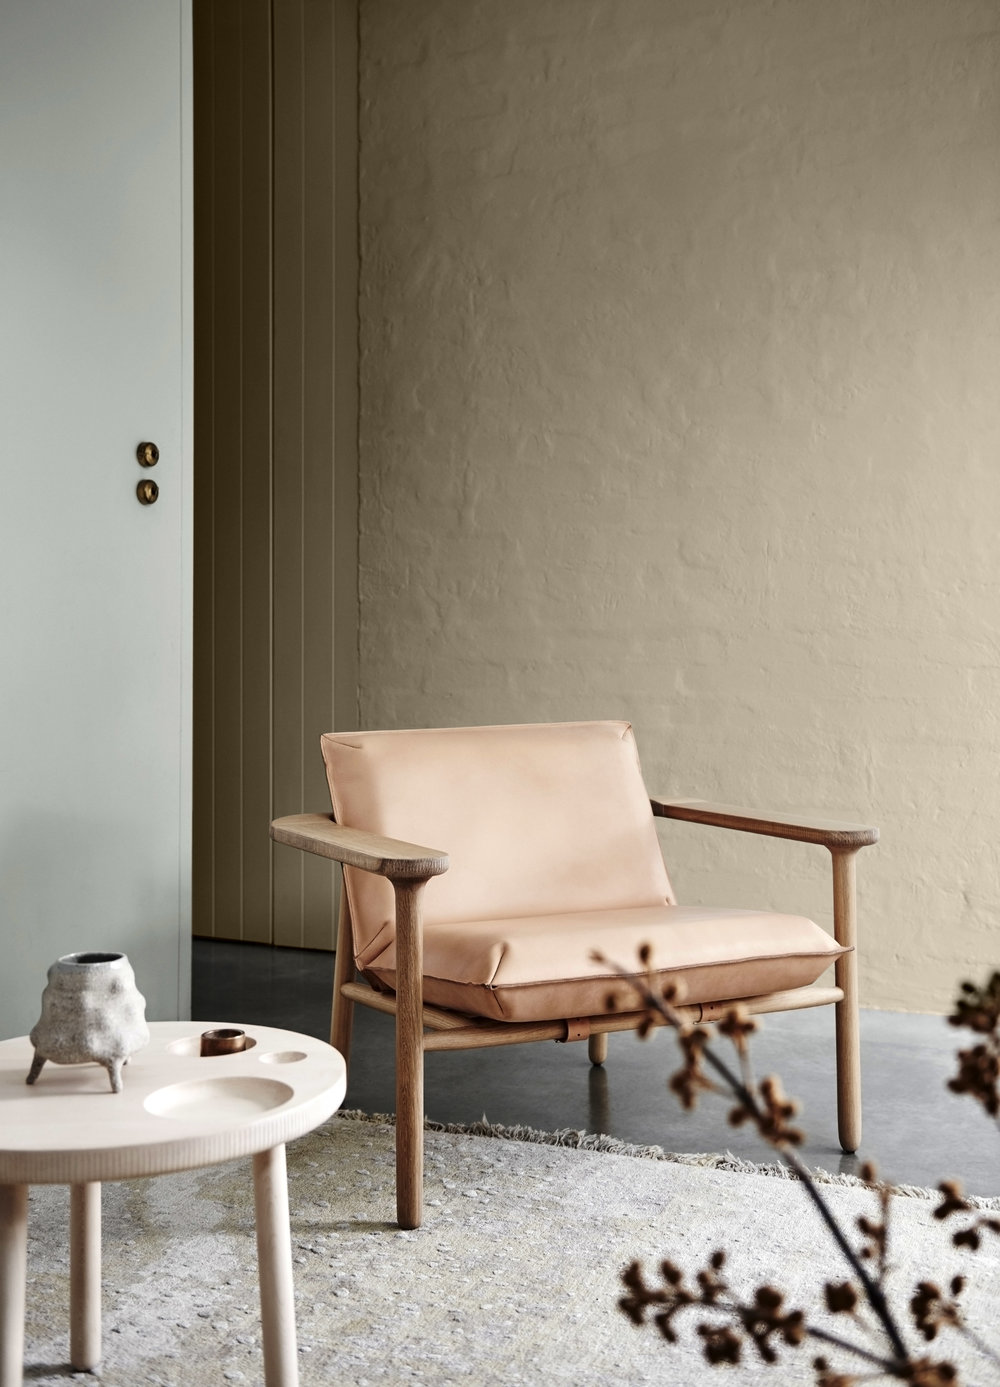 Dulux Colour Trends 2018  –  Essential Palette . Left wall in Dulux Spanish Olive and rear wall in Dulux Gnu Tan.